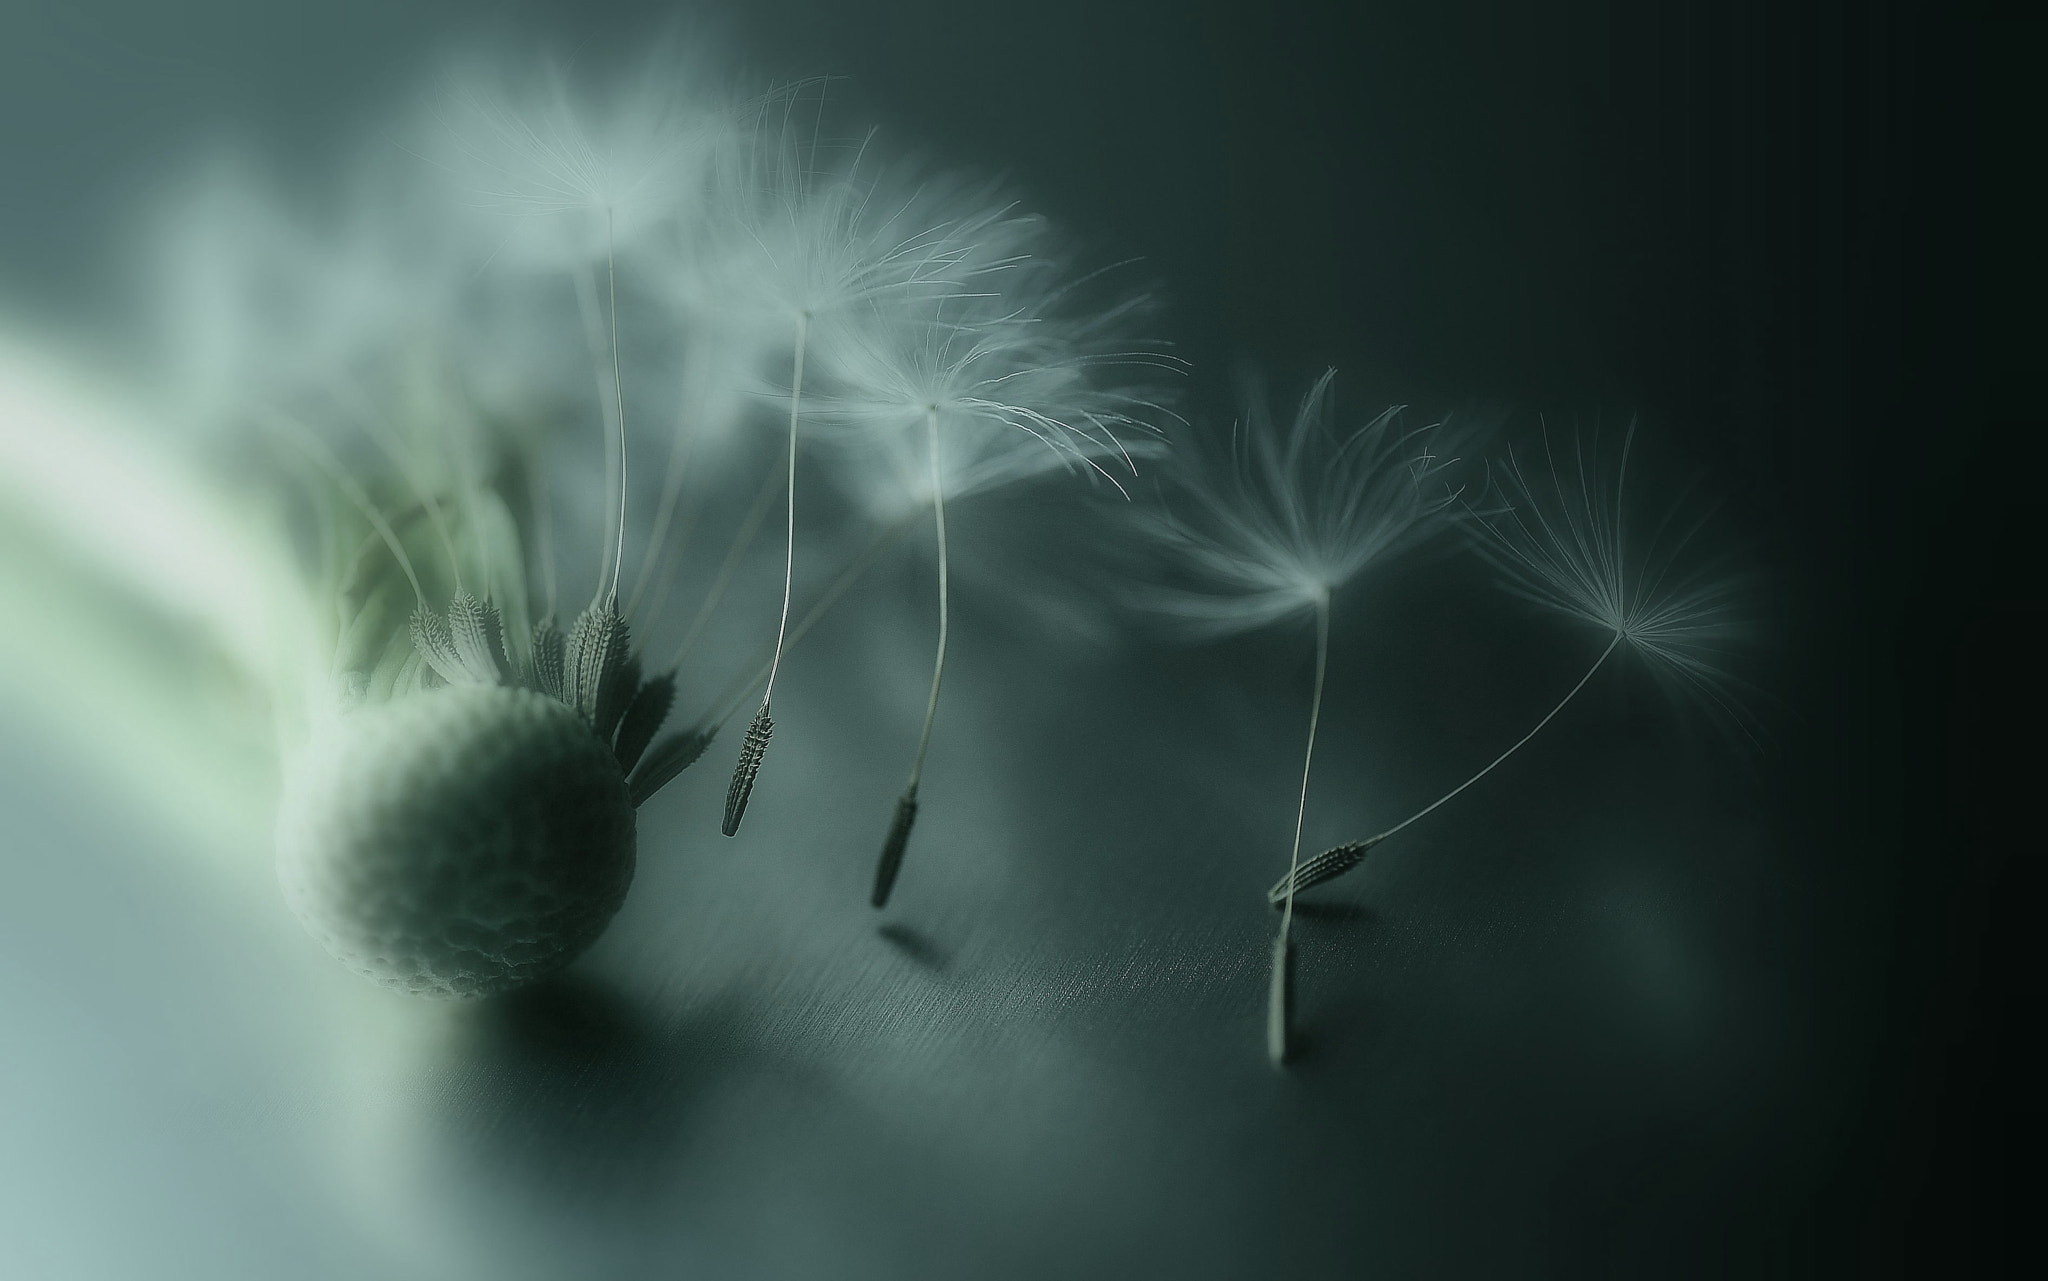 Photograph Dreams of flying by Lafugue Logos   on 500px